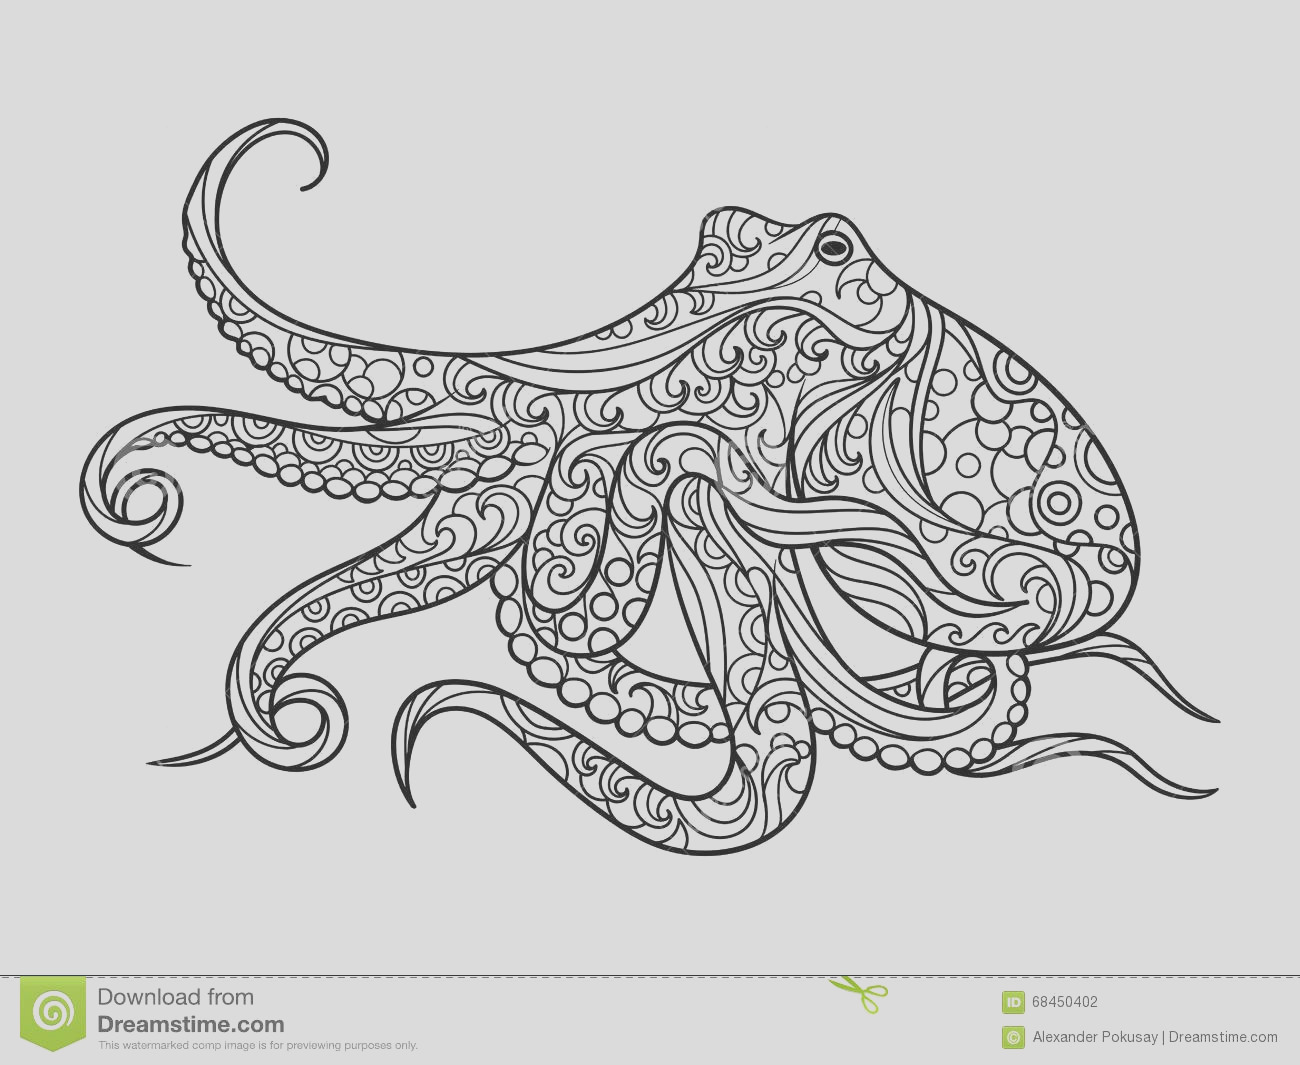 stock illustration octopus coloring book adults vector sea animal illustration anti stress adult zentangle style black white image